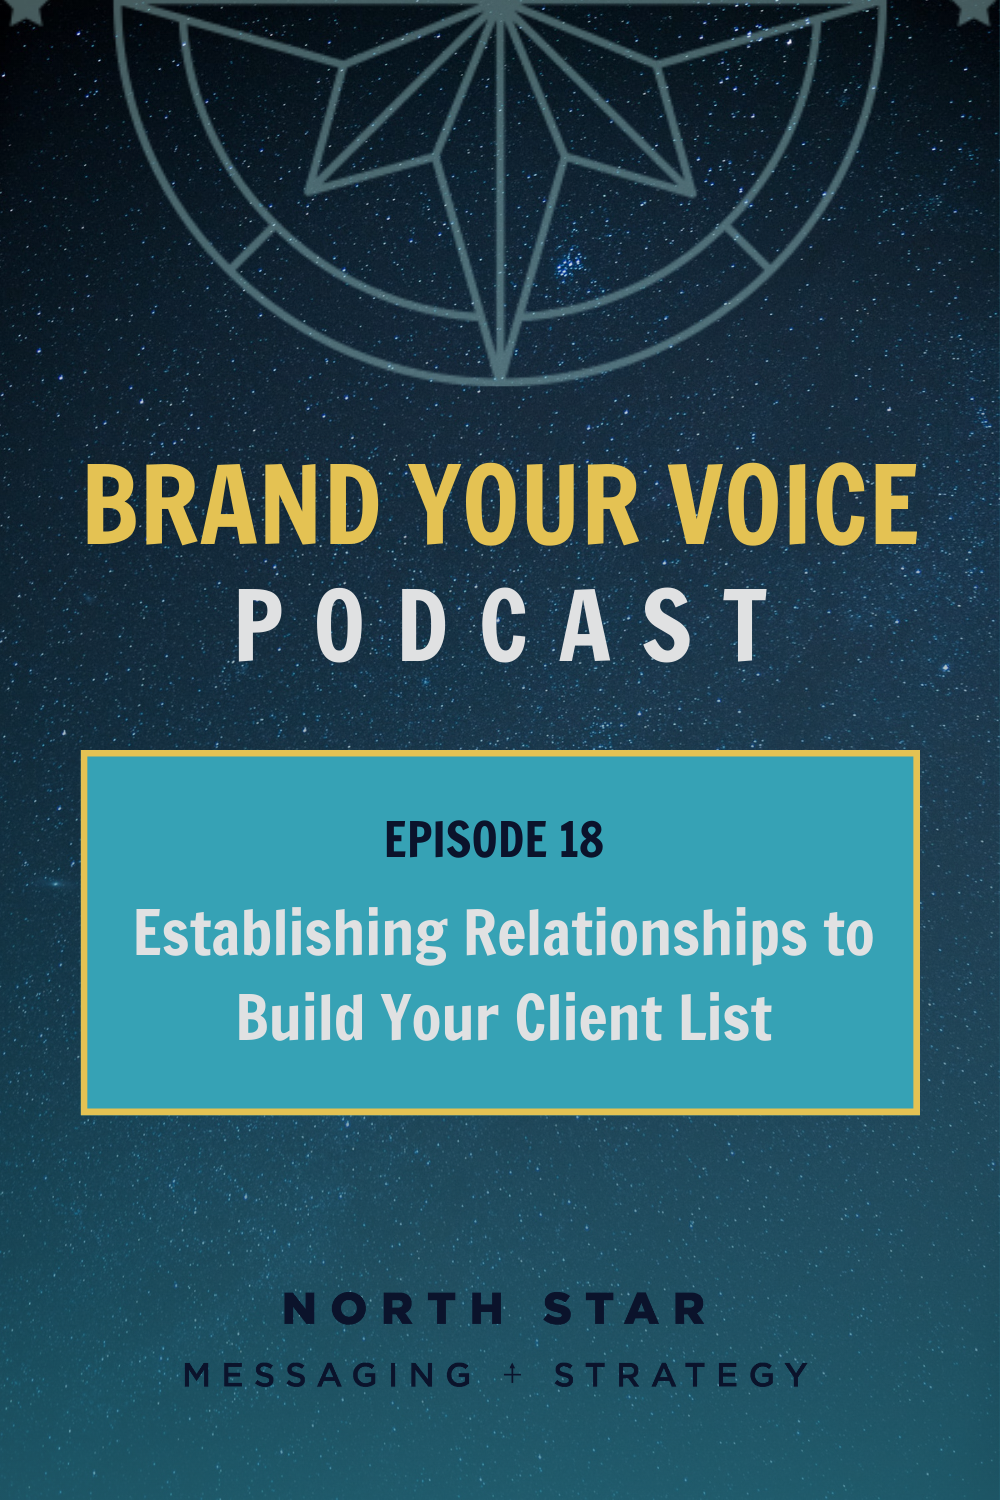 EPISODE 18: Establishing Relationships to Build Your Client List